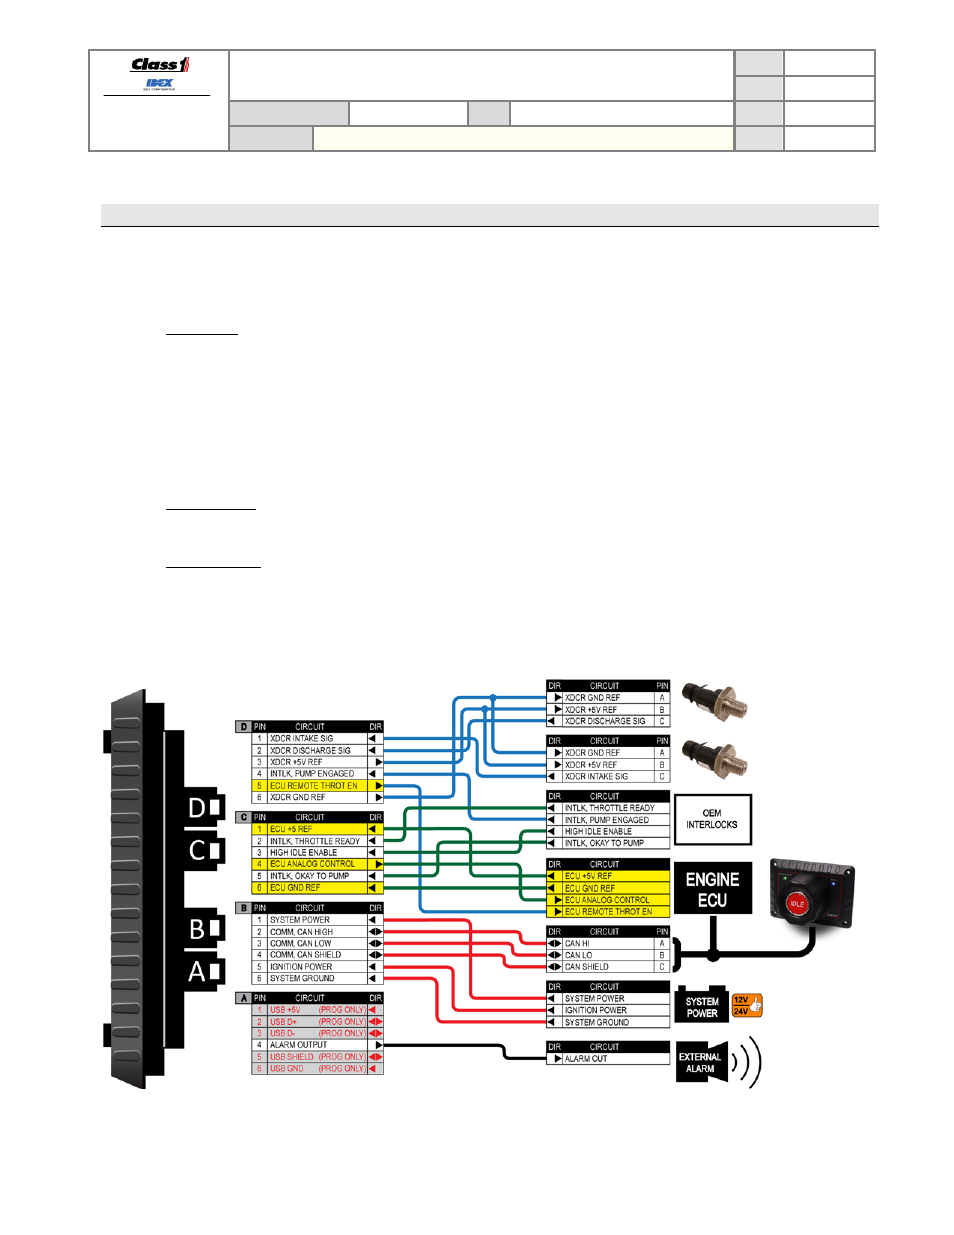 System overview, System part numbers, Wiring detail | Class1  3041-10X-00-CL1 - Sentry Governor - EXTERNAL User Manual | Page 5 / 36